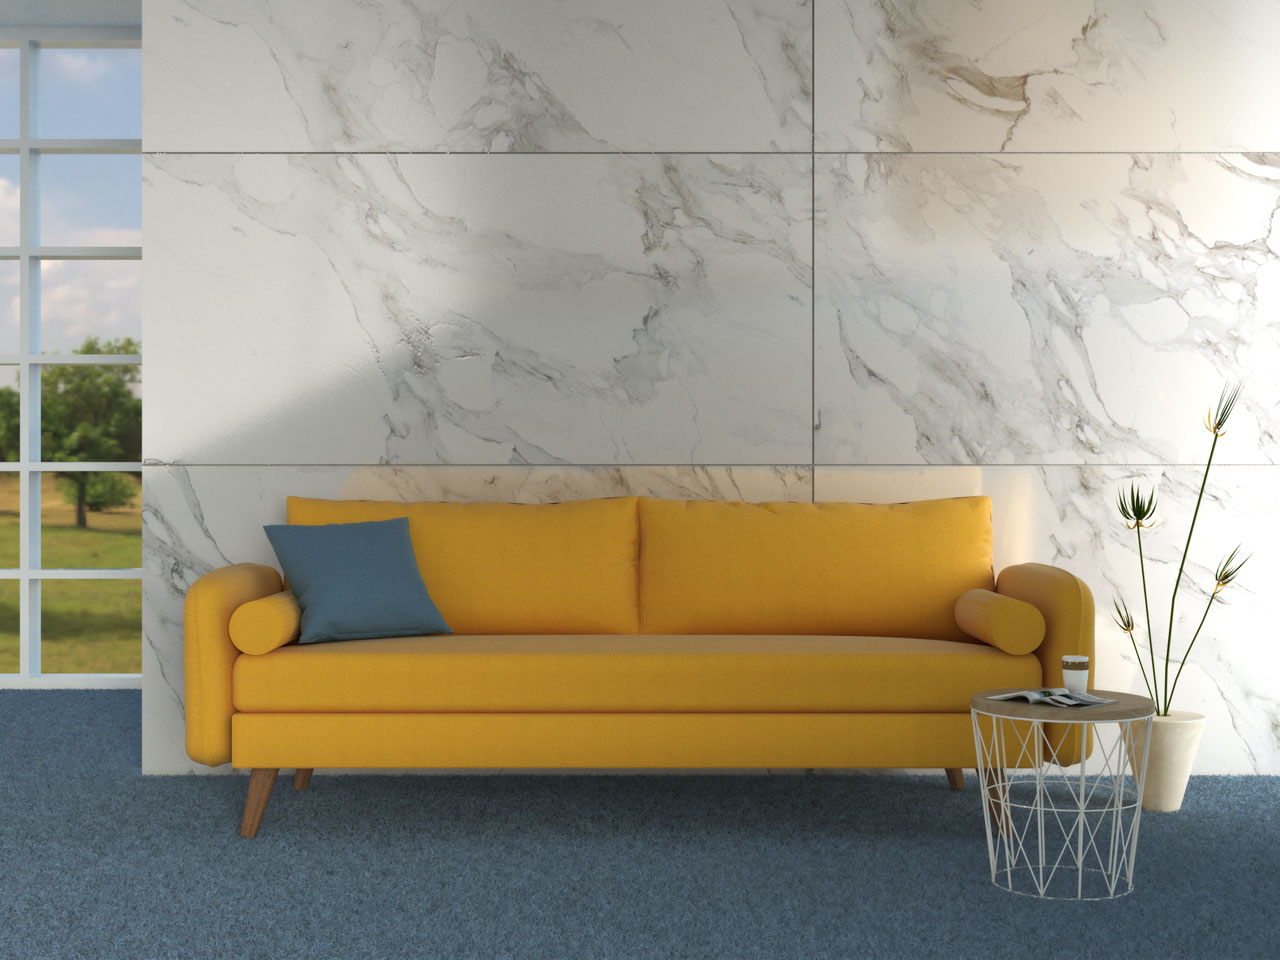 Yellow couch in living room with blue carpet